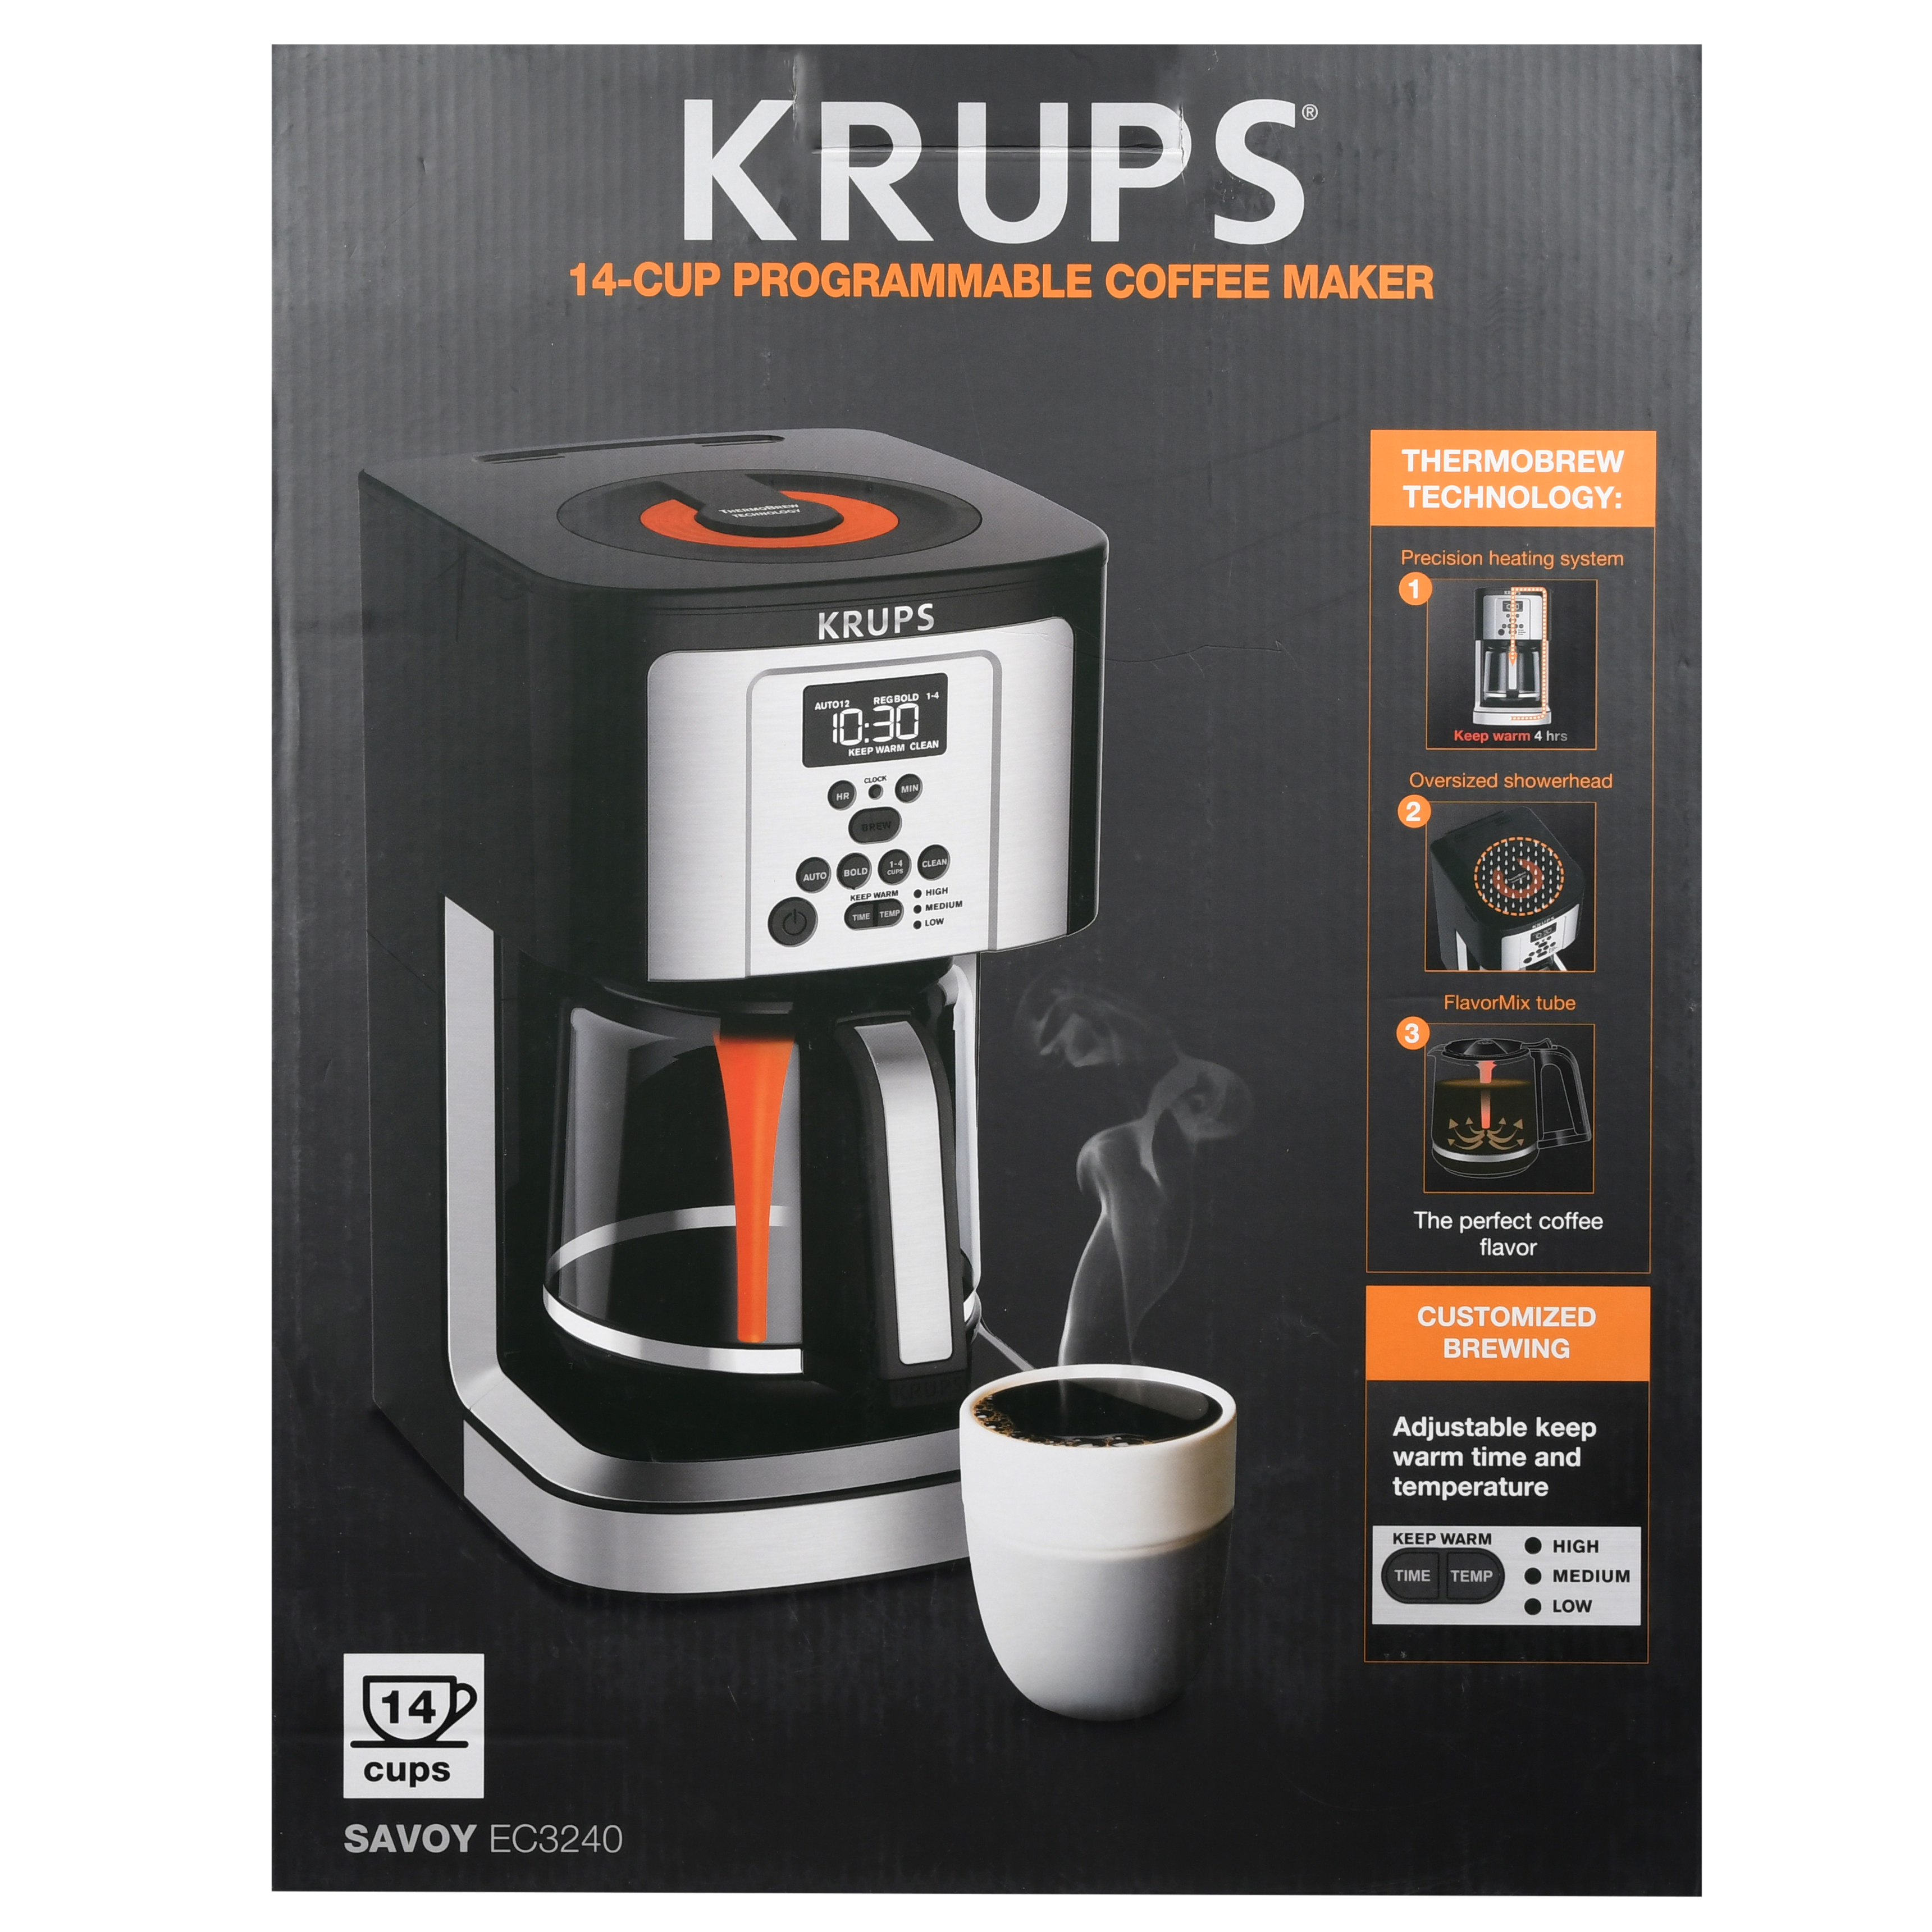 Krups Ec324 14 Cup Thermobrew Programmable Coffee Maker With Large Use This Digital Temperature Controller Homebrewing Stack Exchange Capacity Technology Dual Auto Start Adjustable Keep Warm Walmart